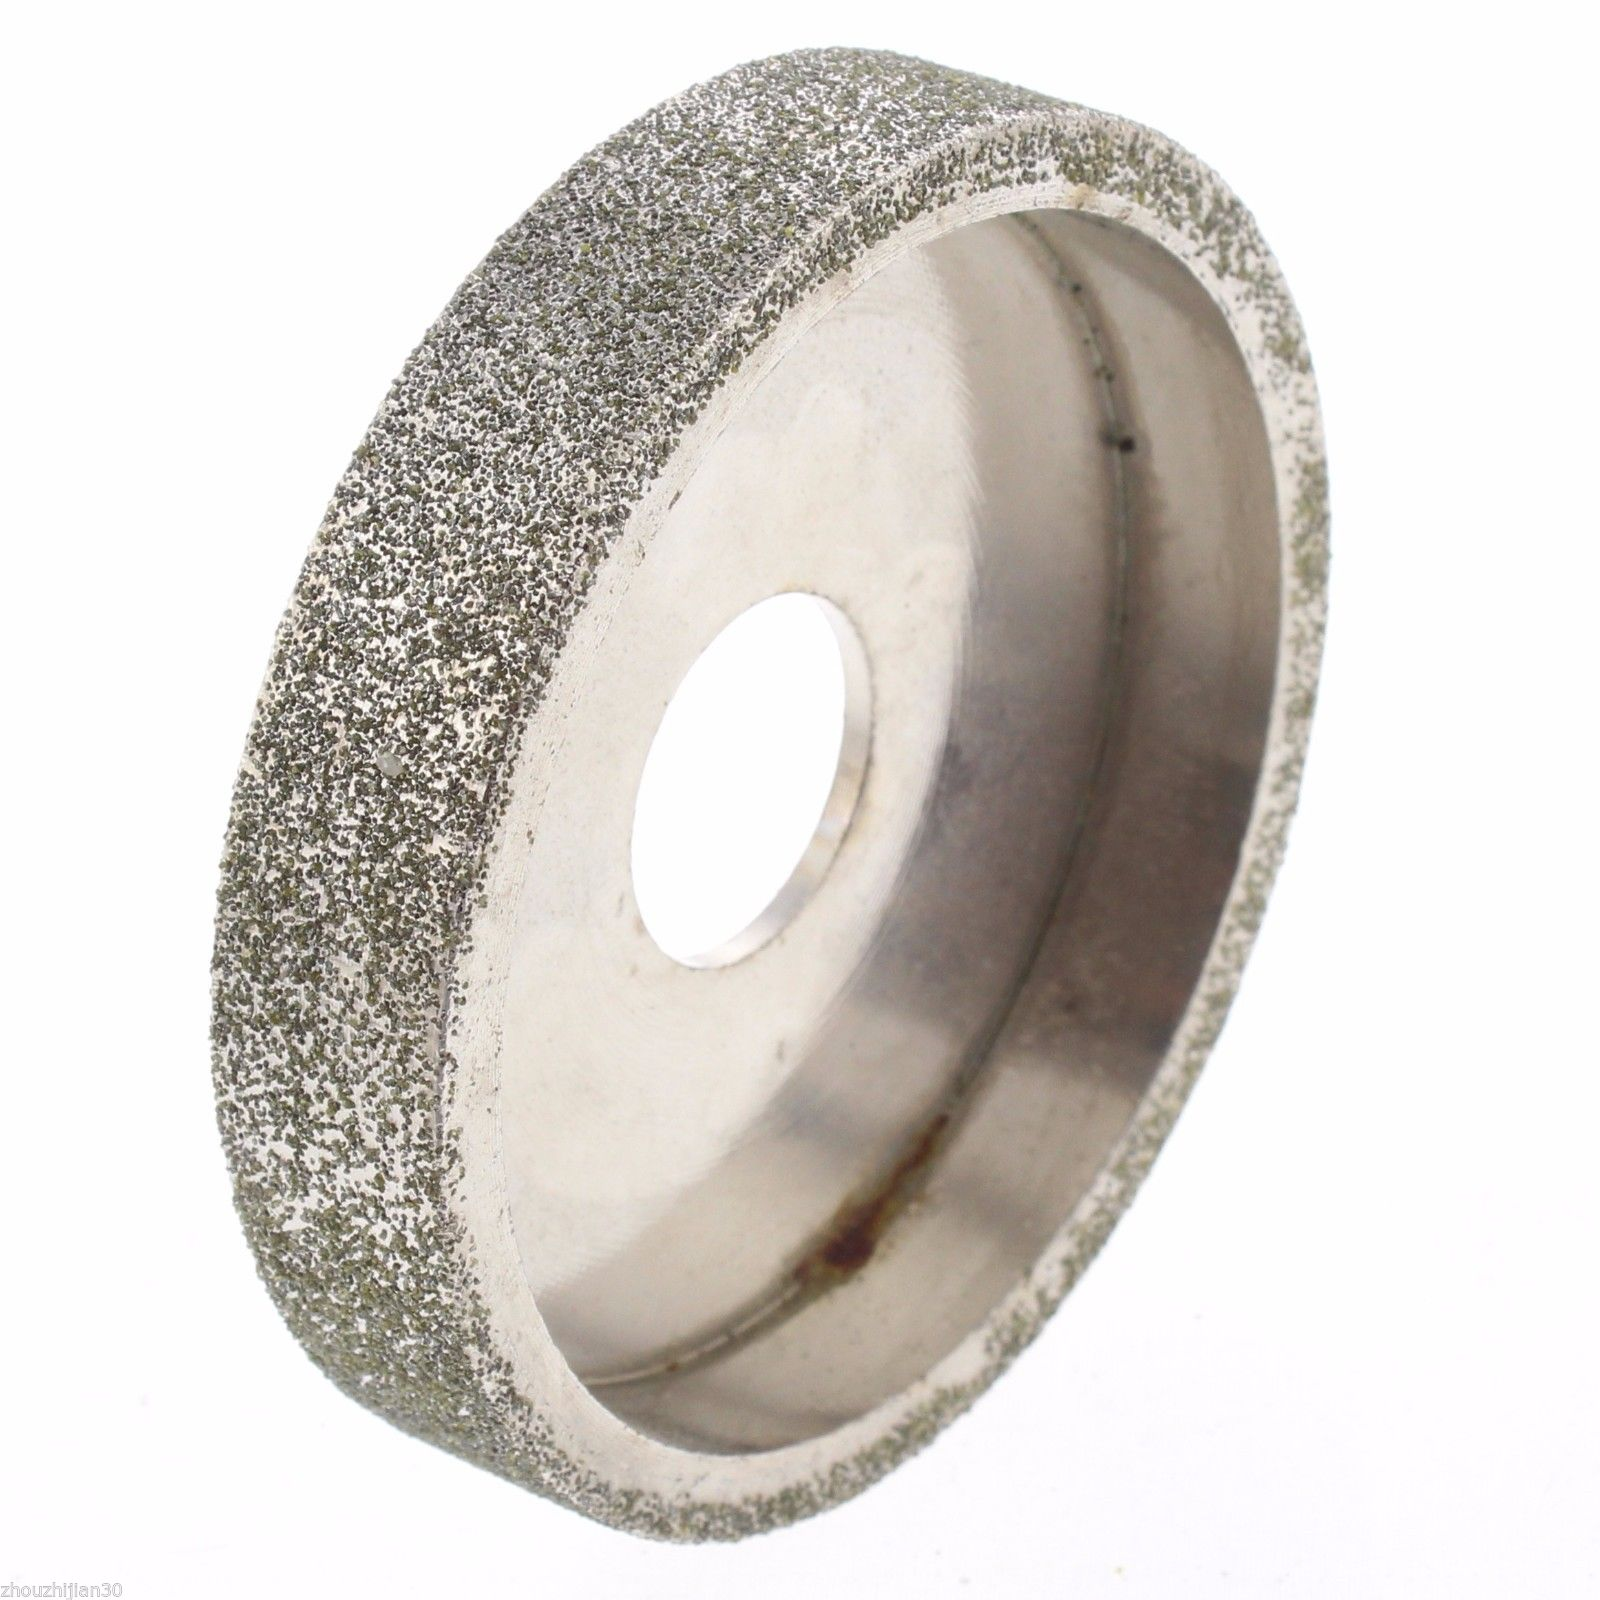 3 inch lapidary Electroplated diamond grinding wheel for Angle Grinder grit 80  ILOVETOOL 4 inch 6 inch straight cup diamond grinding wheel for glass edger straight line double edging beveling machine m009